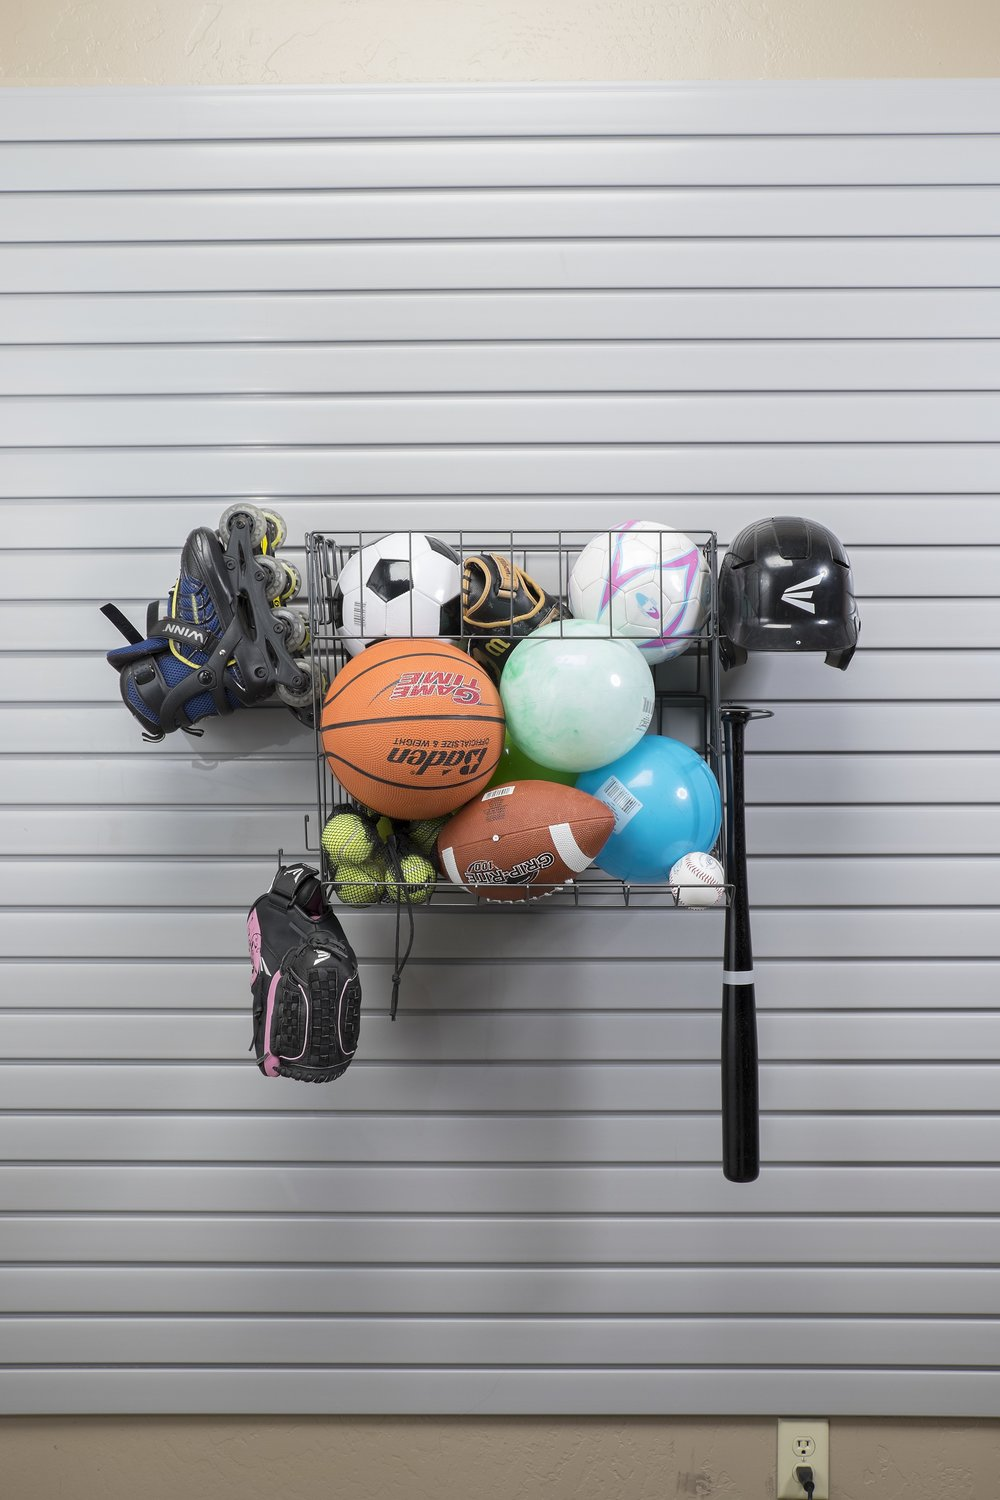 A slatwall keeps sporting goods organized and off the floor.  Call Closets of Tulsa  today for a FREE consultation and 3-D garage design:  918.609.0214